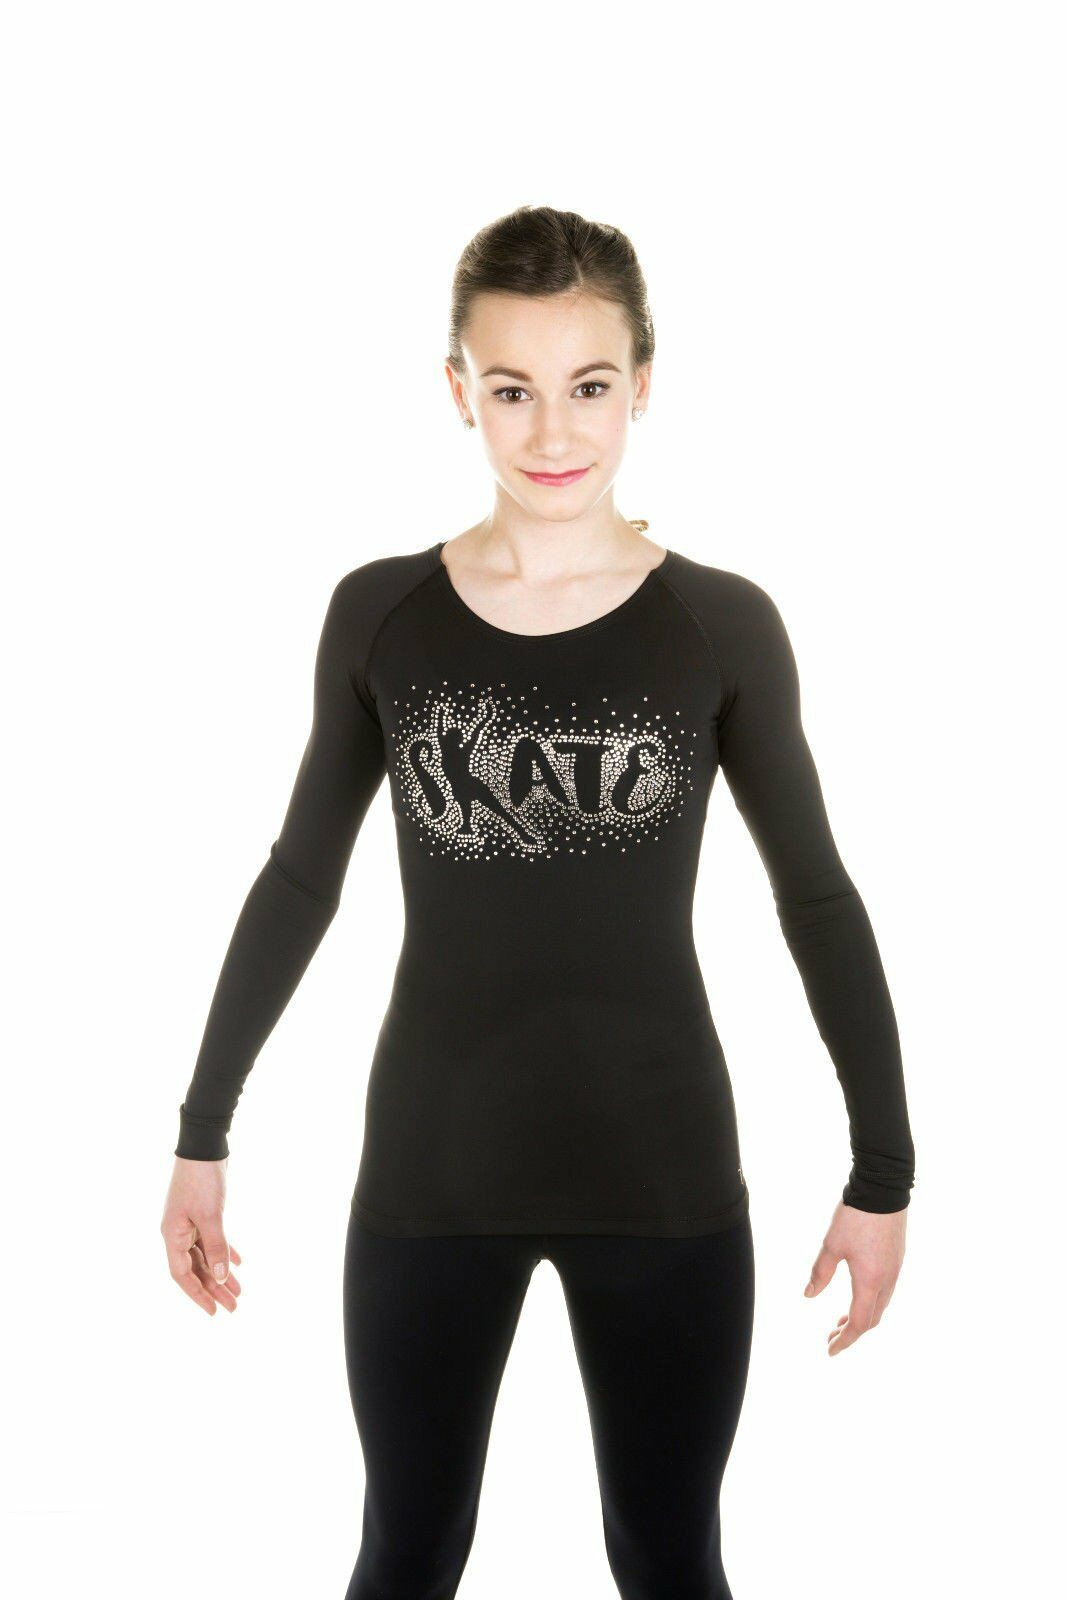 New Figure Skating Top Shirt with RHinestones Design  in Size Youth 8-10  shop clearance